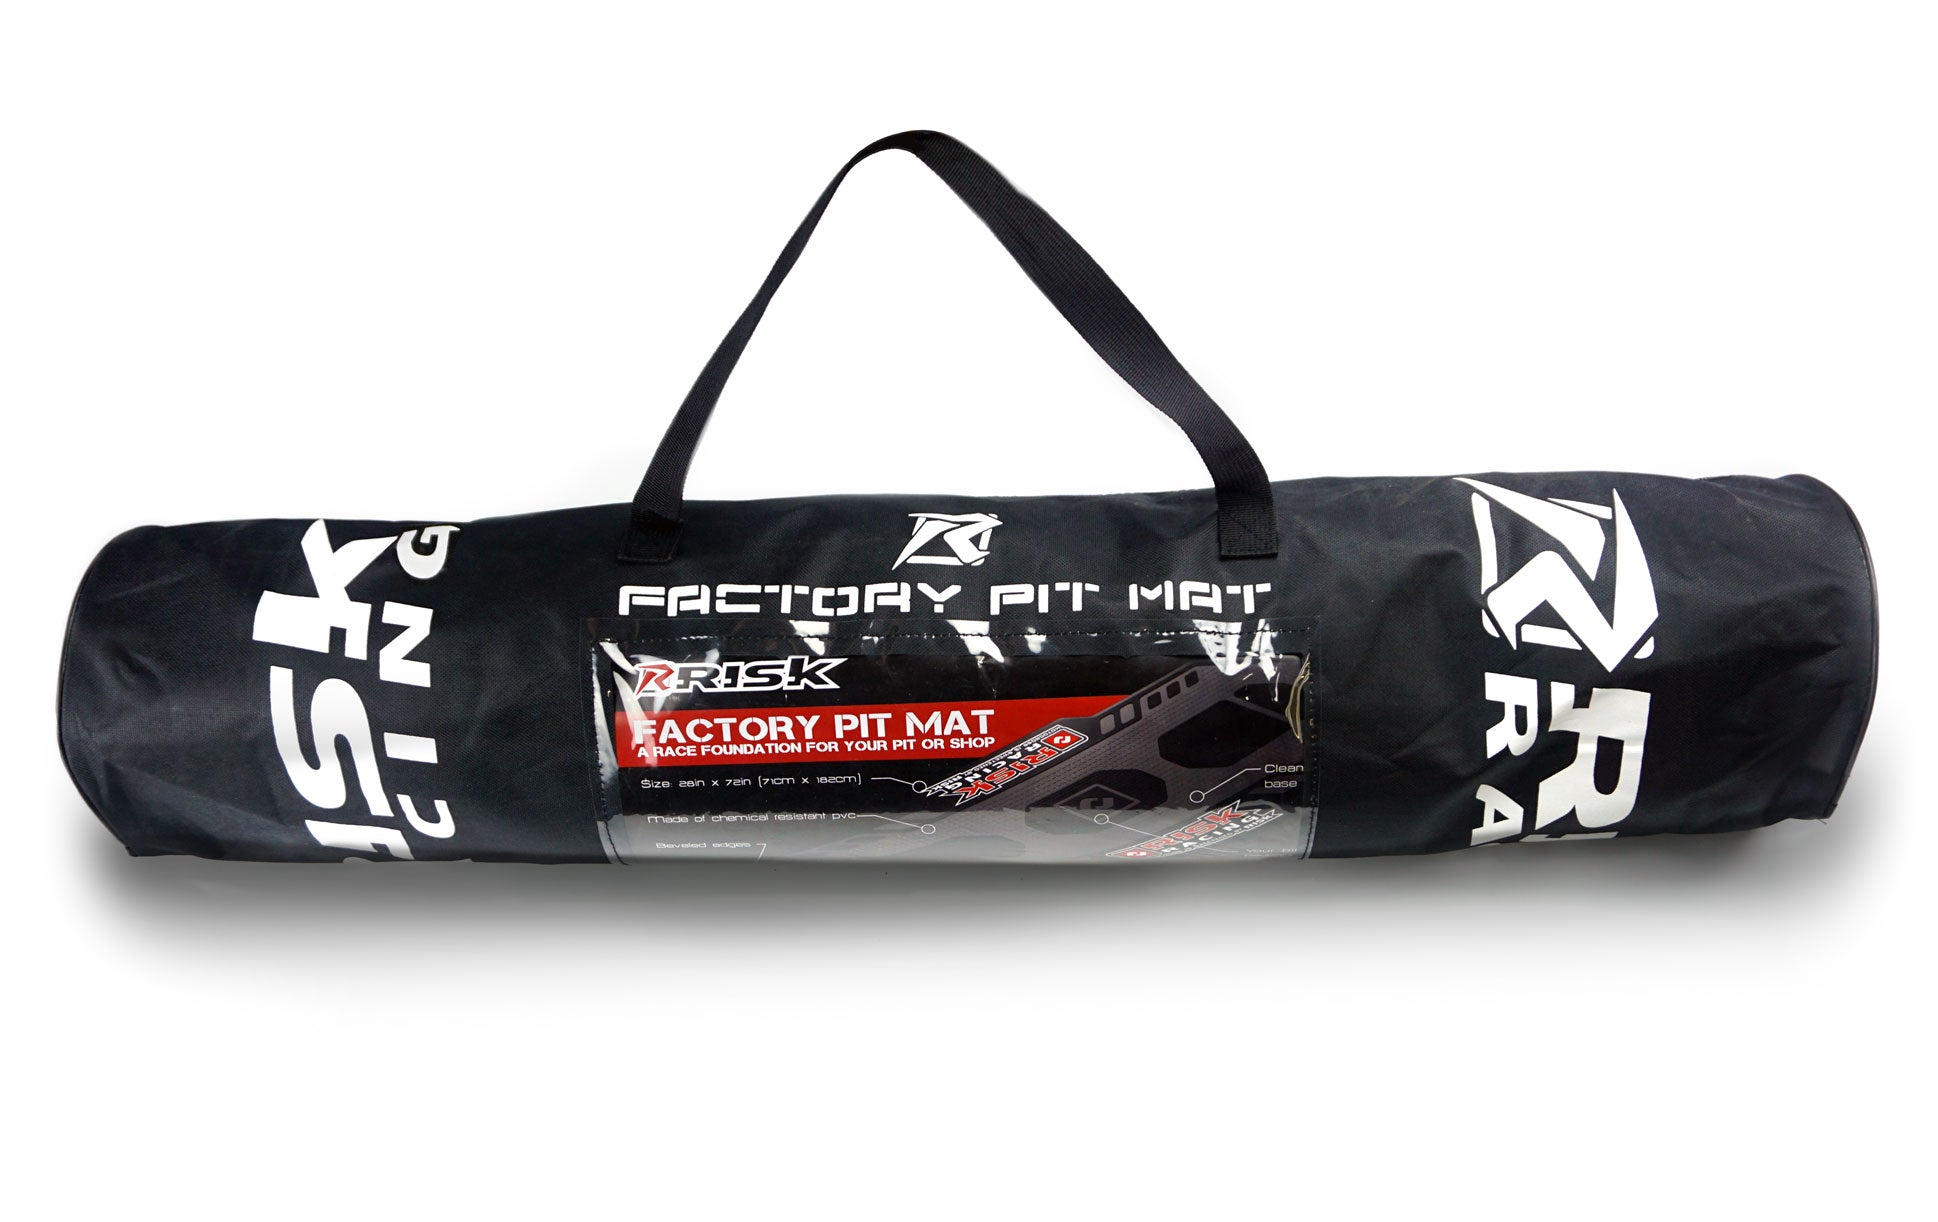 Sac fourre-tout à tapis de course Risk Racing Factory